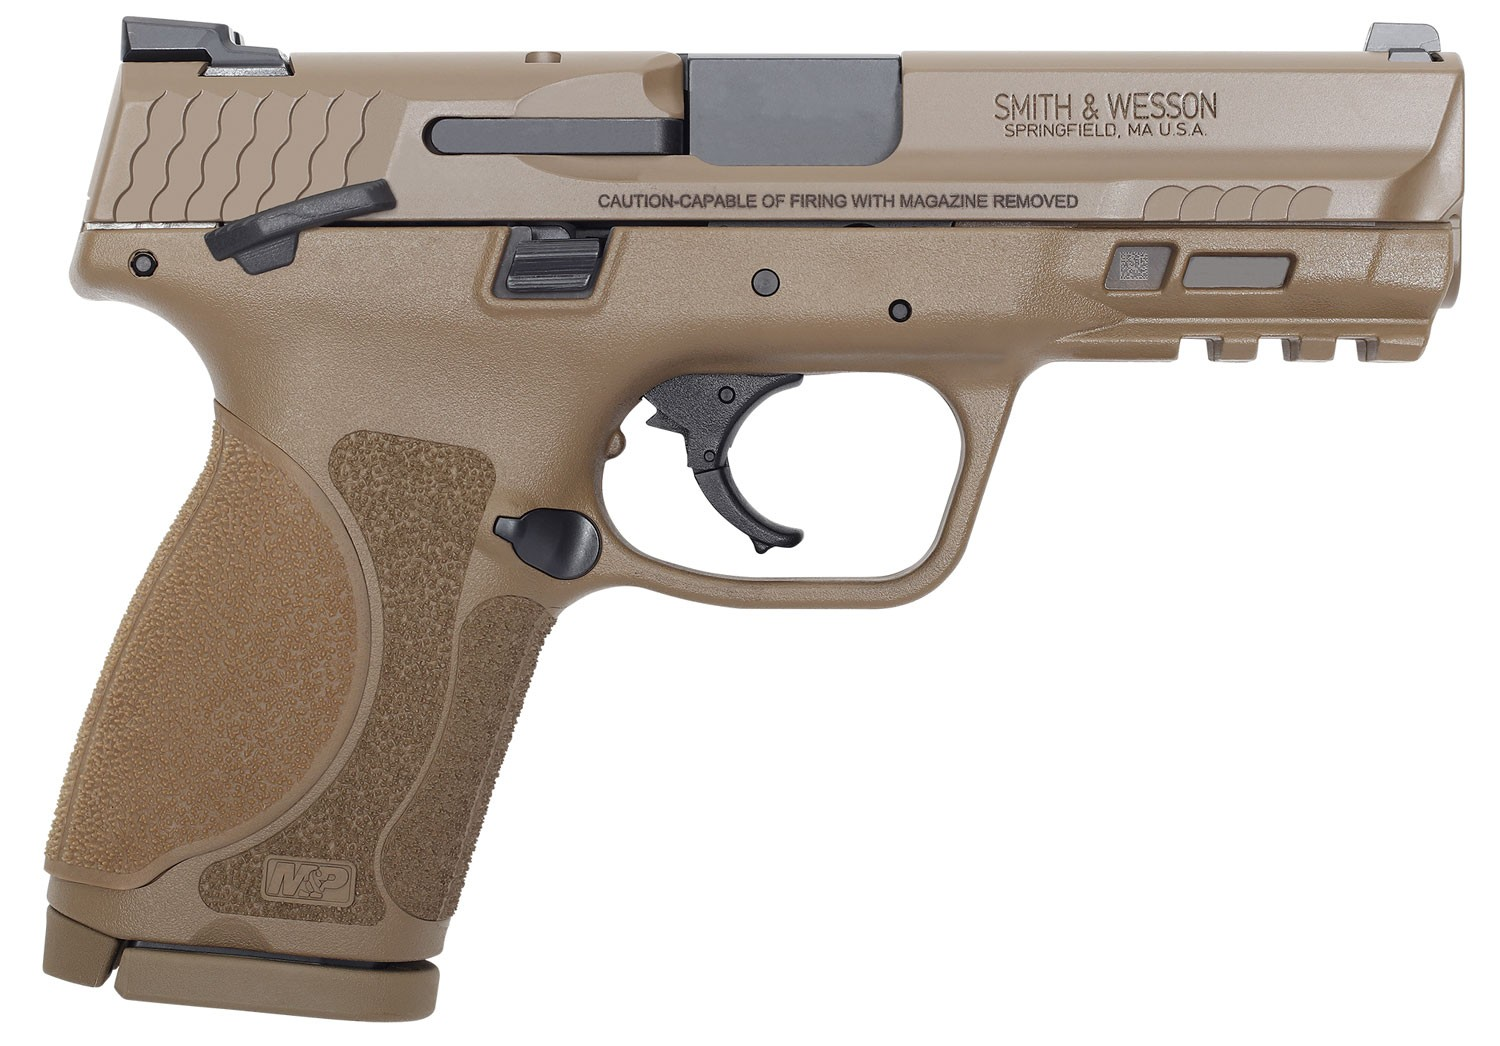 Smith & Wesson 12459 M&P 9 M2.0 Compact 9mm Luger 4in. 15+1 Flat Dark Earth Polymer Grip/Frame